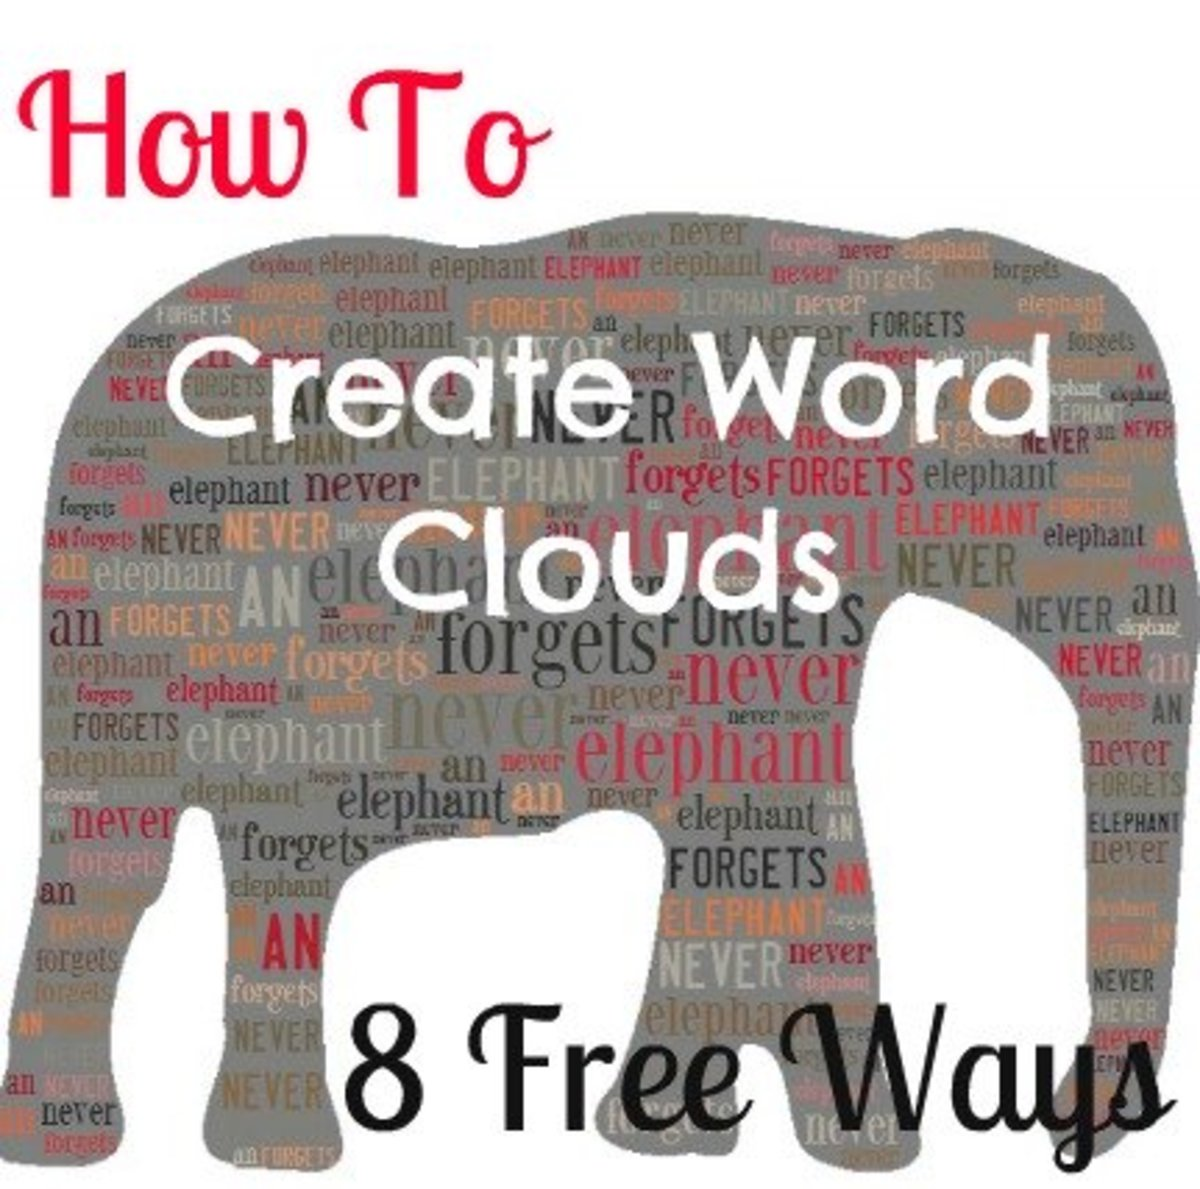 Free Online Word-Cloud Generator Tools